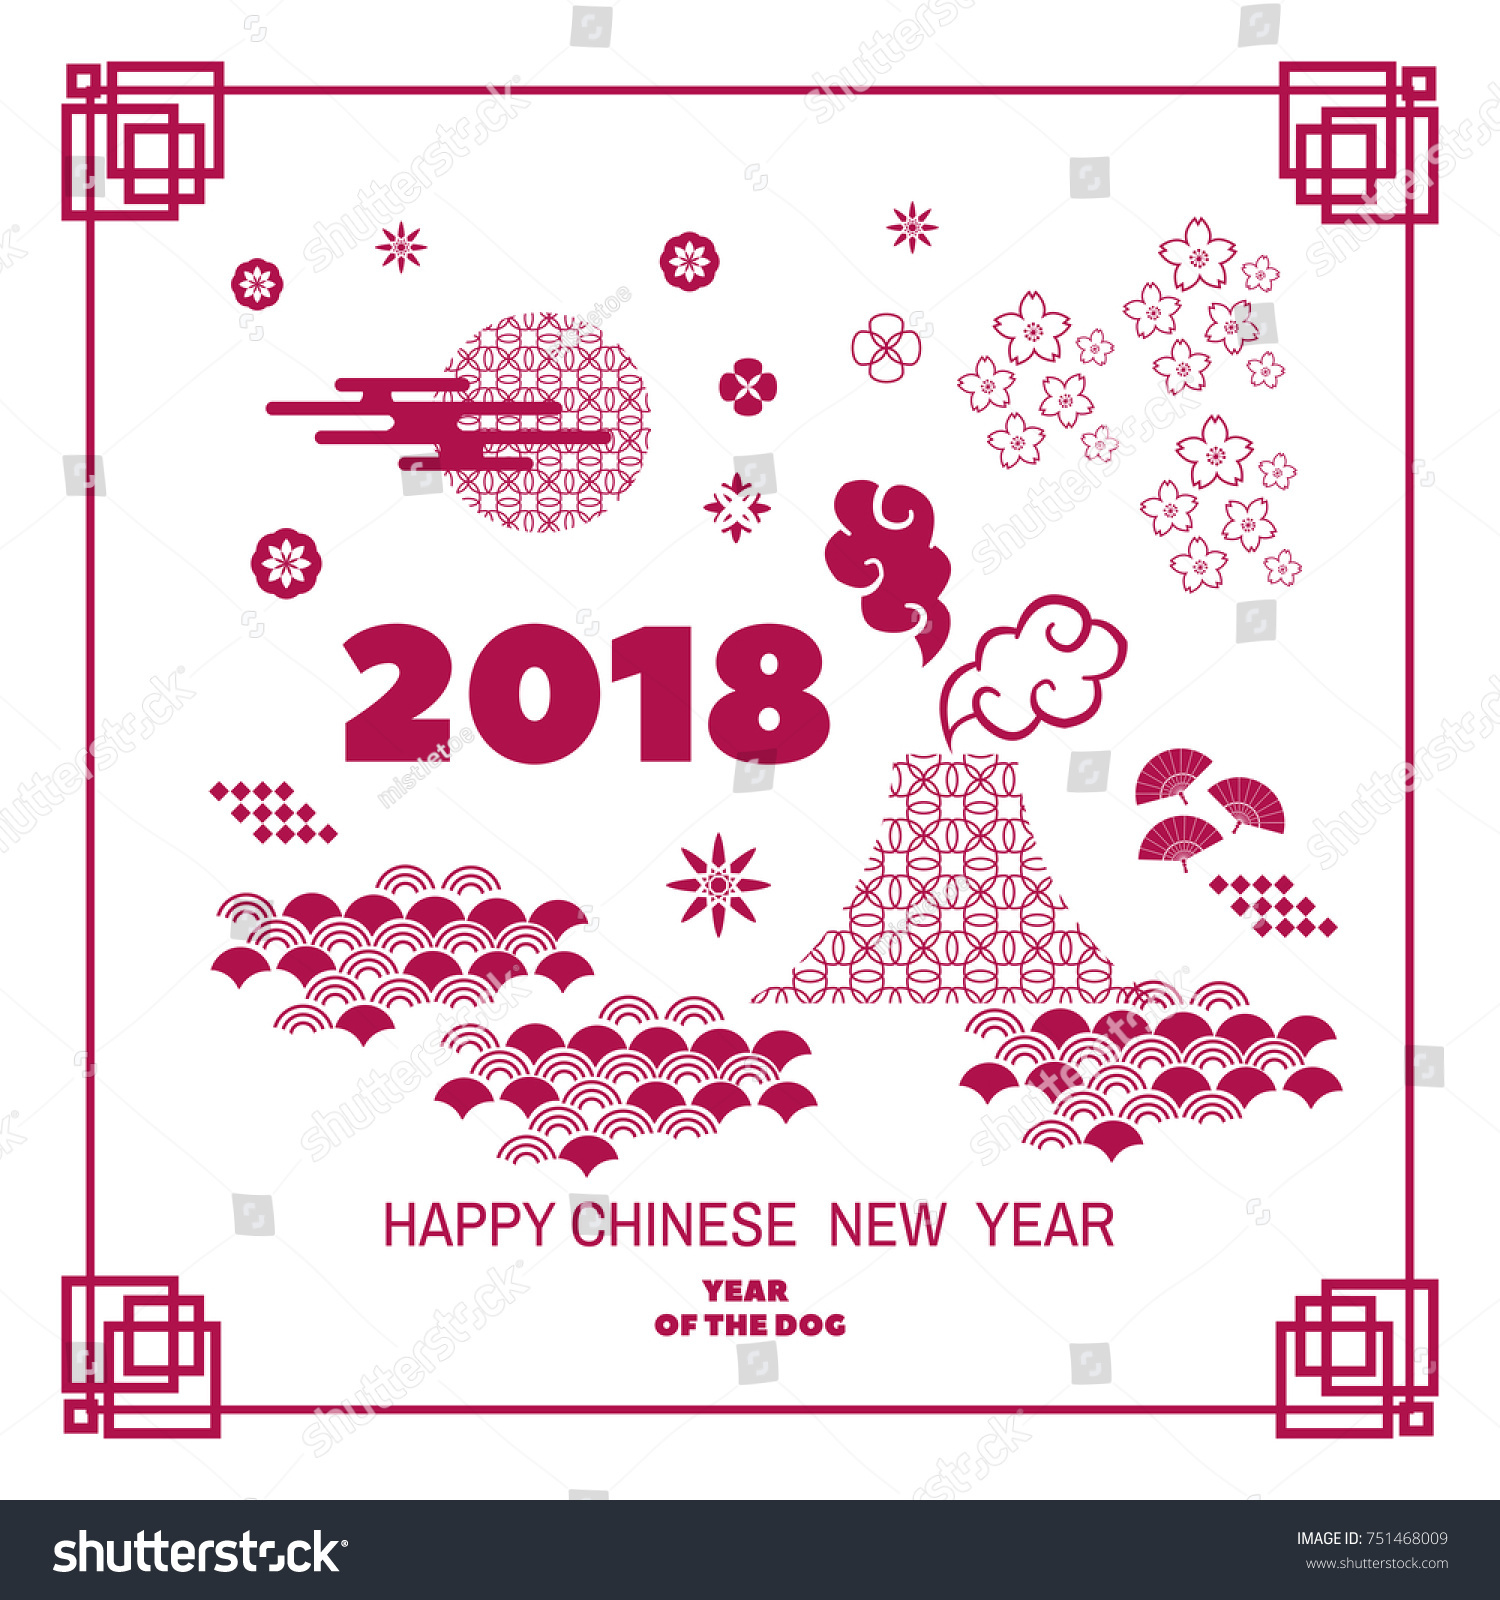 happy chinese 2018 new year template banner poster greeting postcard with asian elements